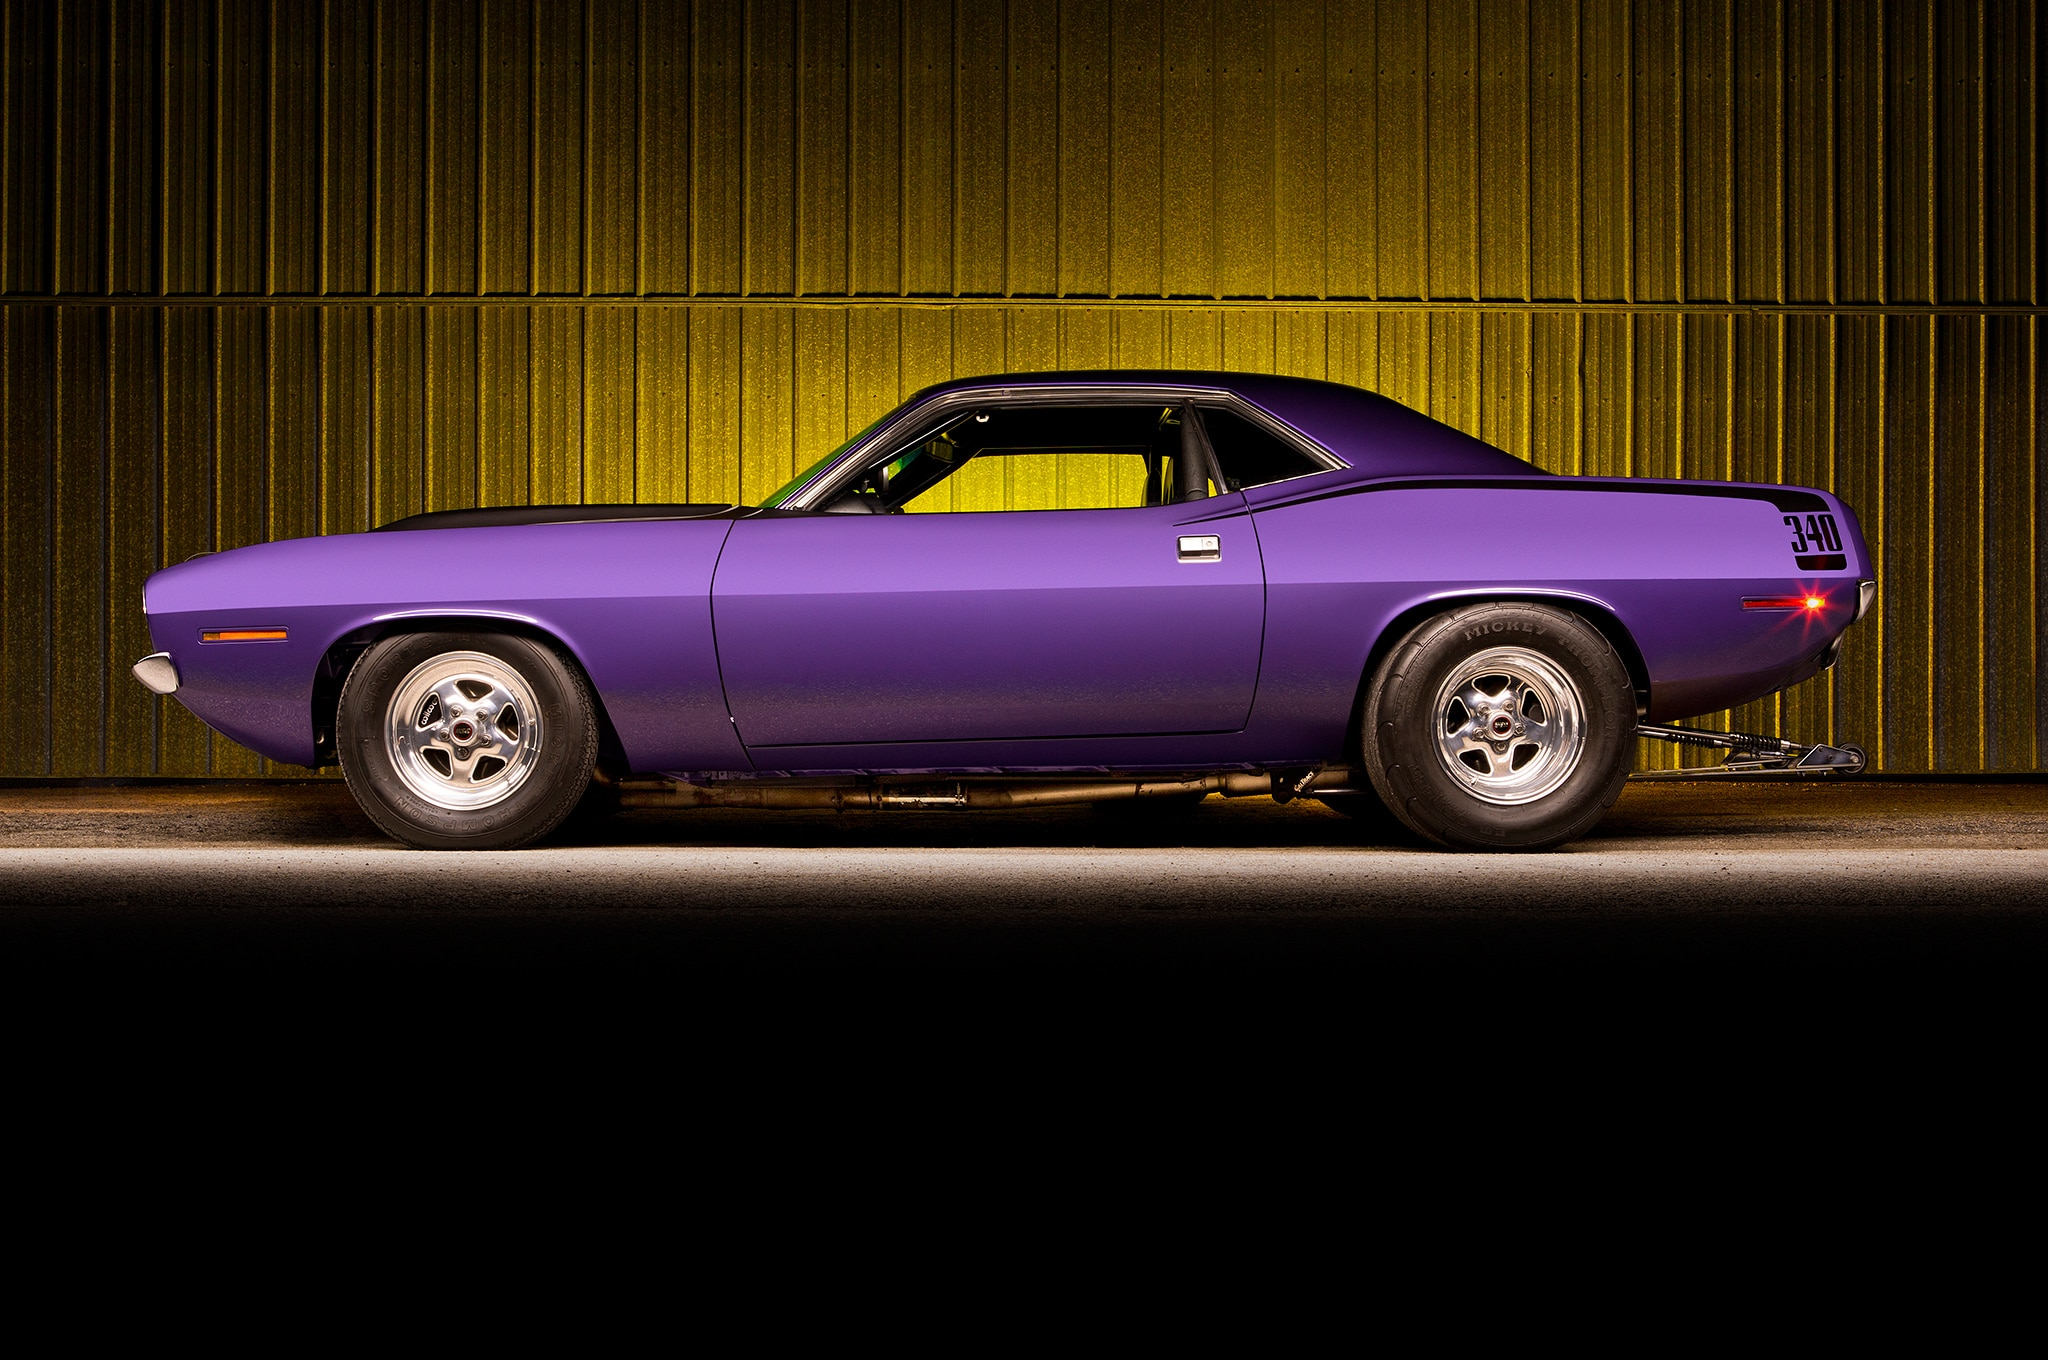 Purple Terror: How to Get 1,000 HP Out of a 1970 Plymouth Barracuda